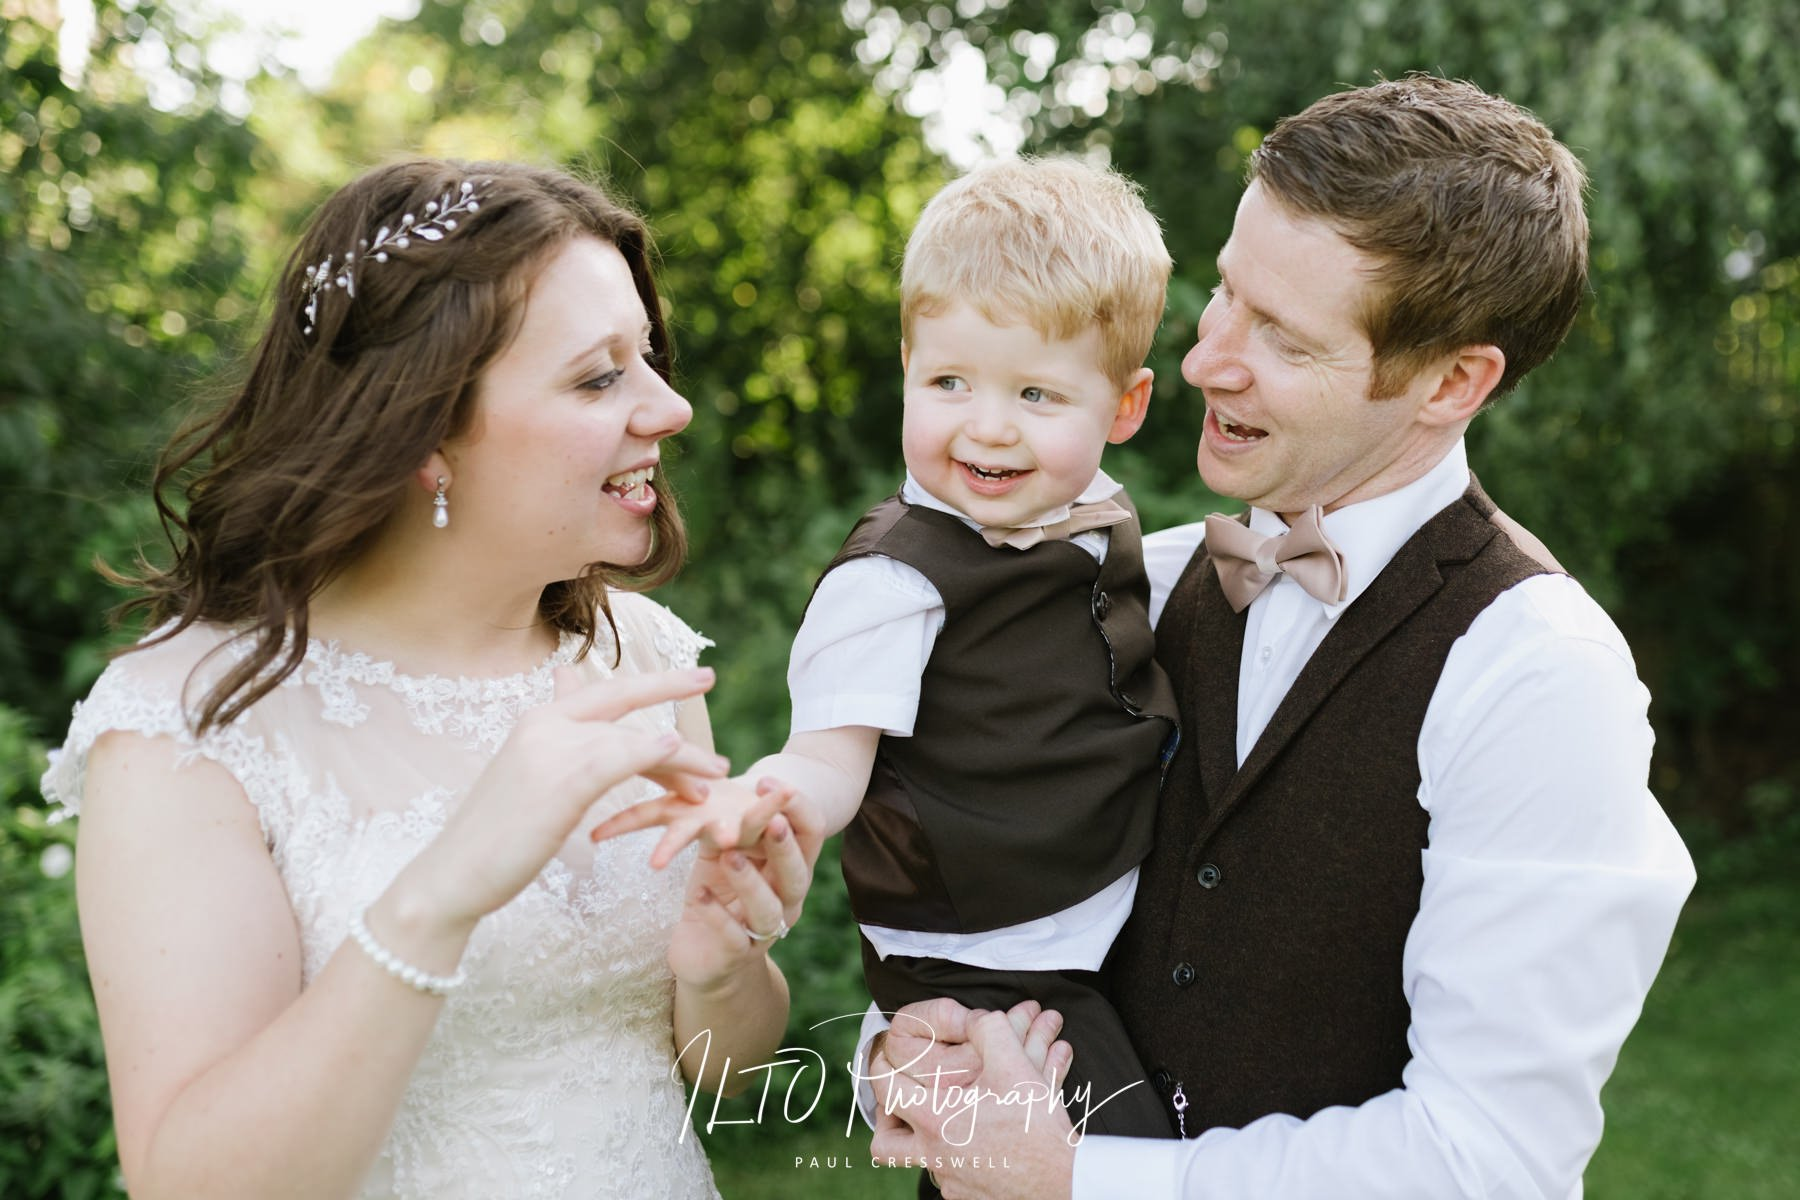 Family wedding photographer yorkshire wedding photographer